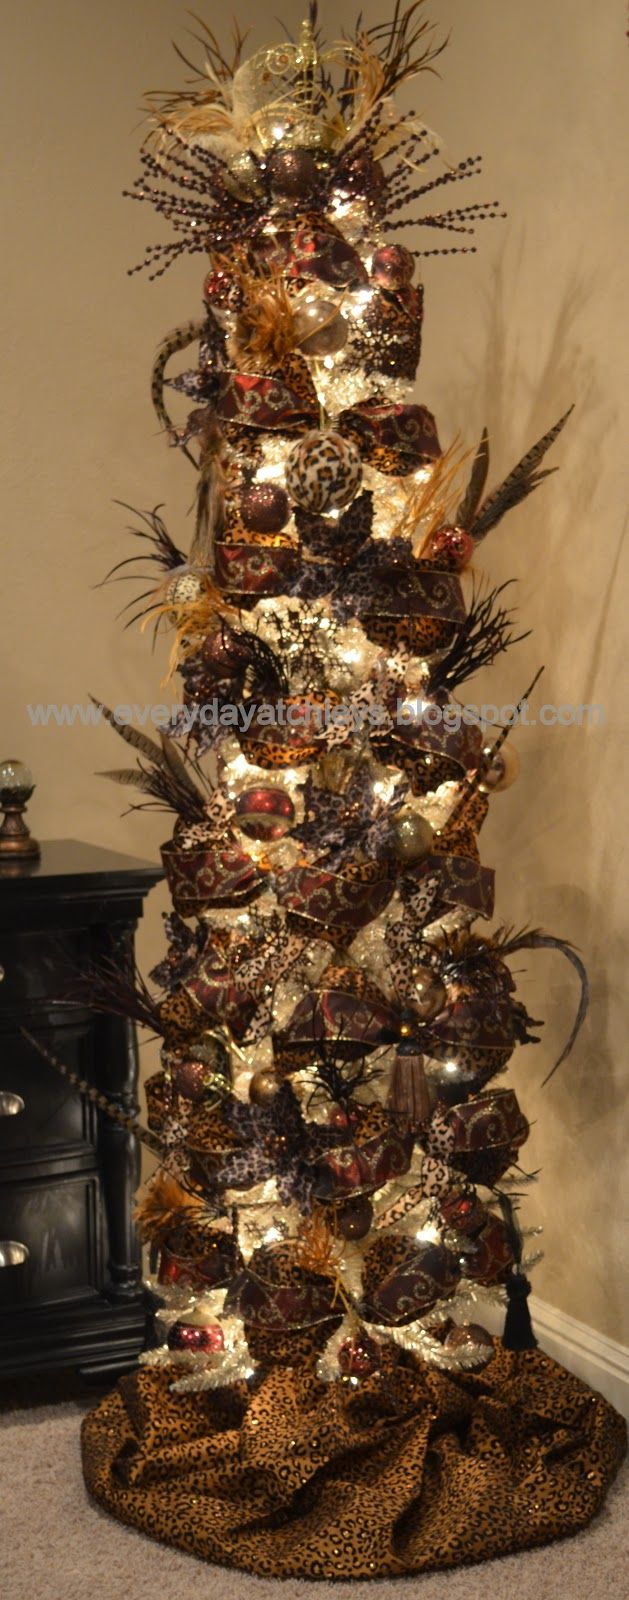 Everyday Atchleys: A Leopard Print Christmas Tree! Totally Becky, Love The  Feathers